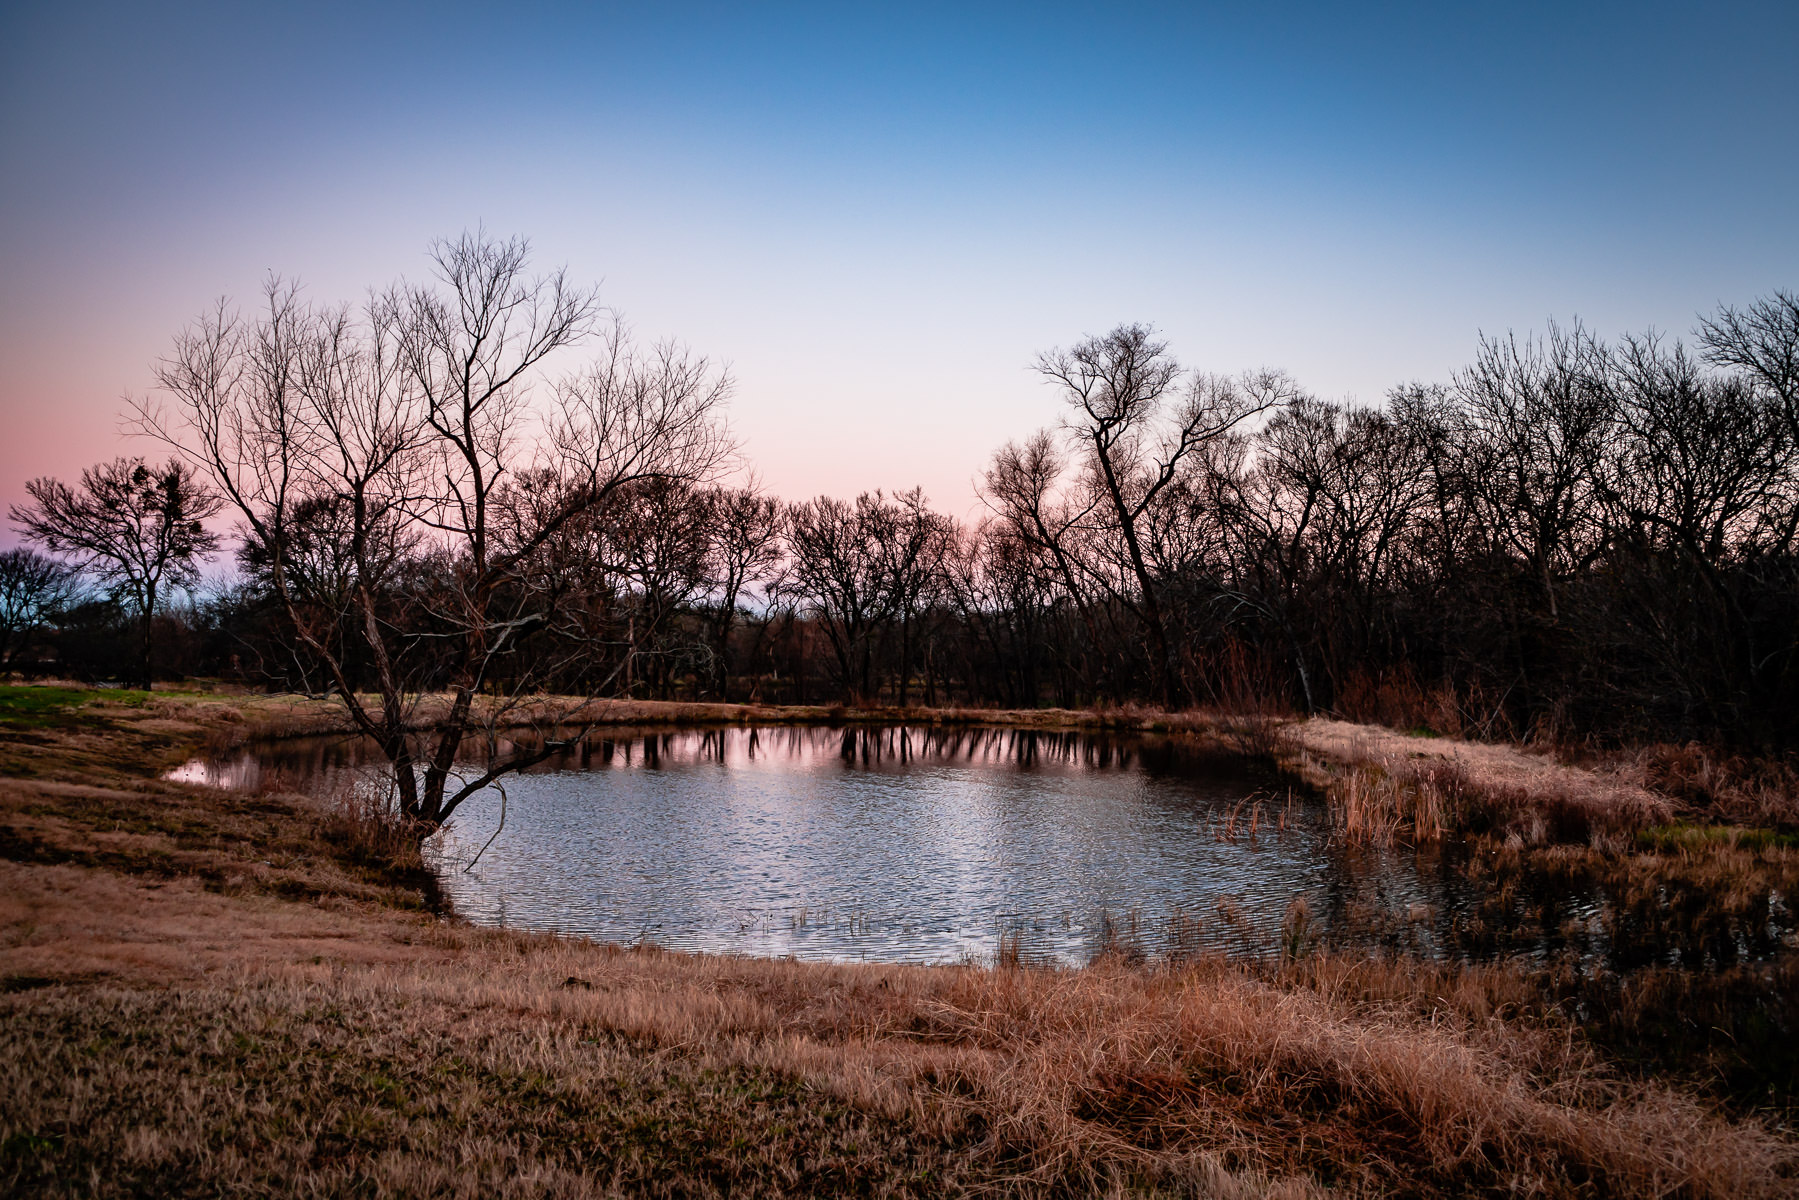 The first light of day on a pond at North Texas' Hagerman National Wildlife Refuge.